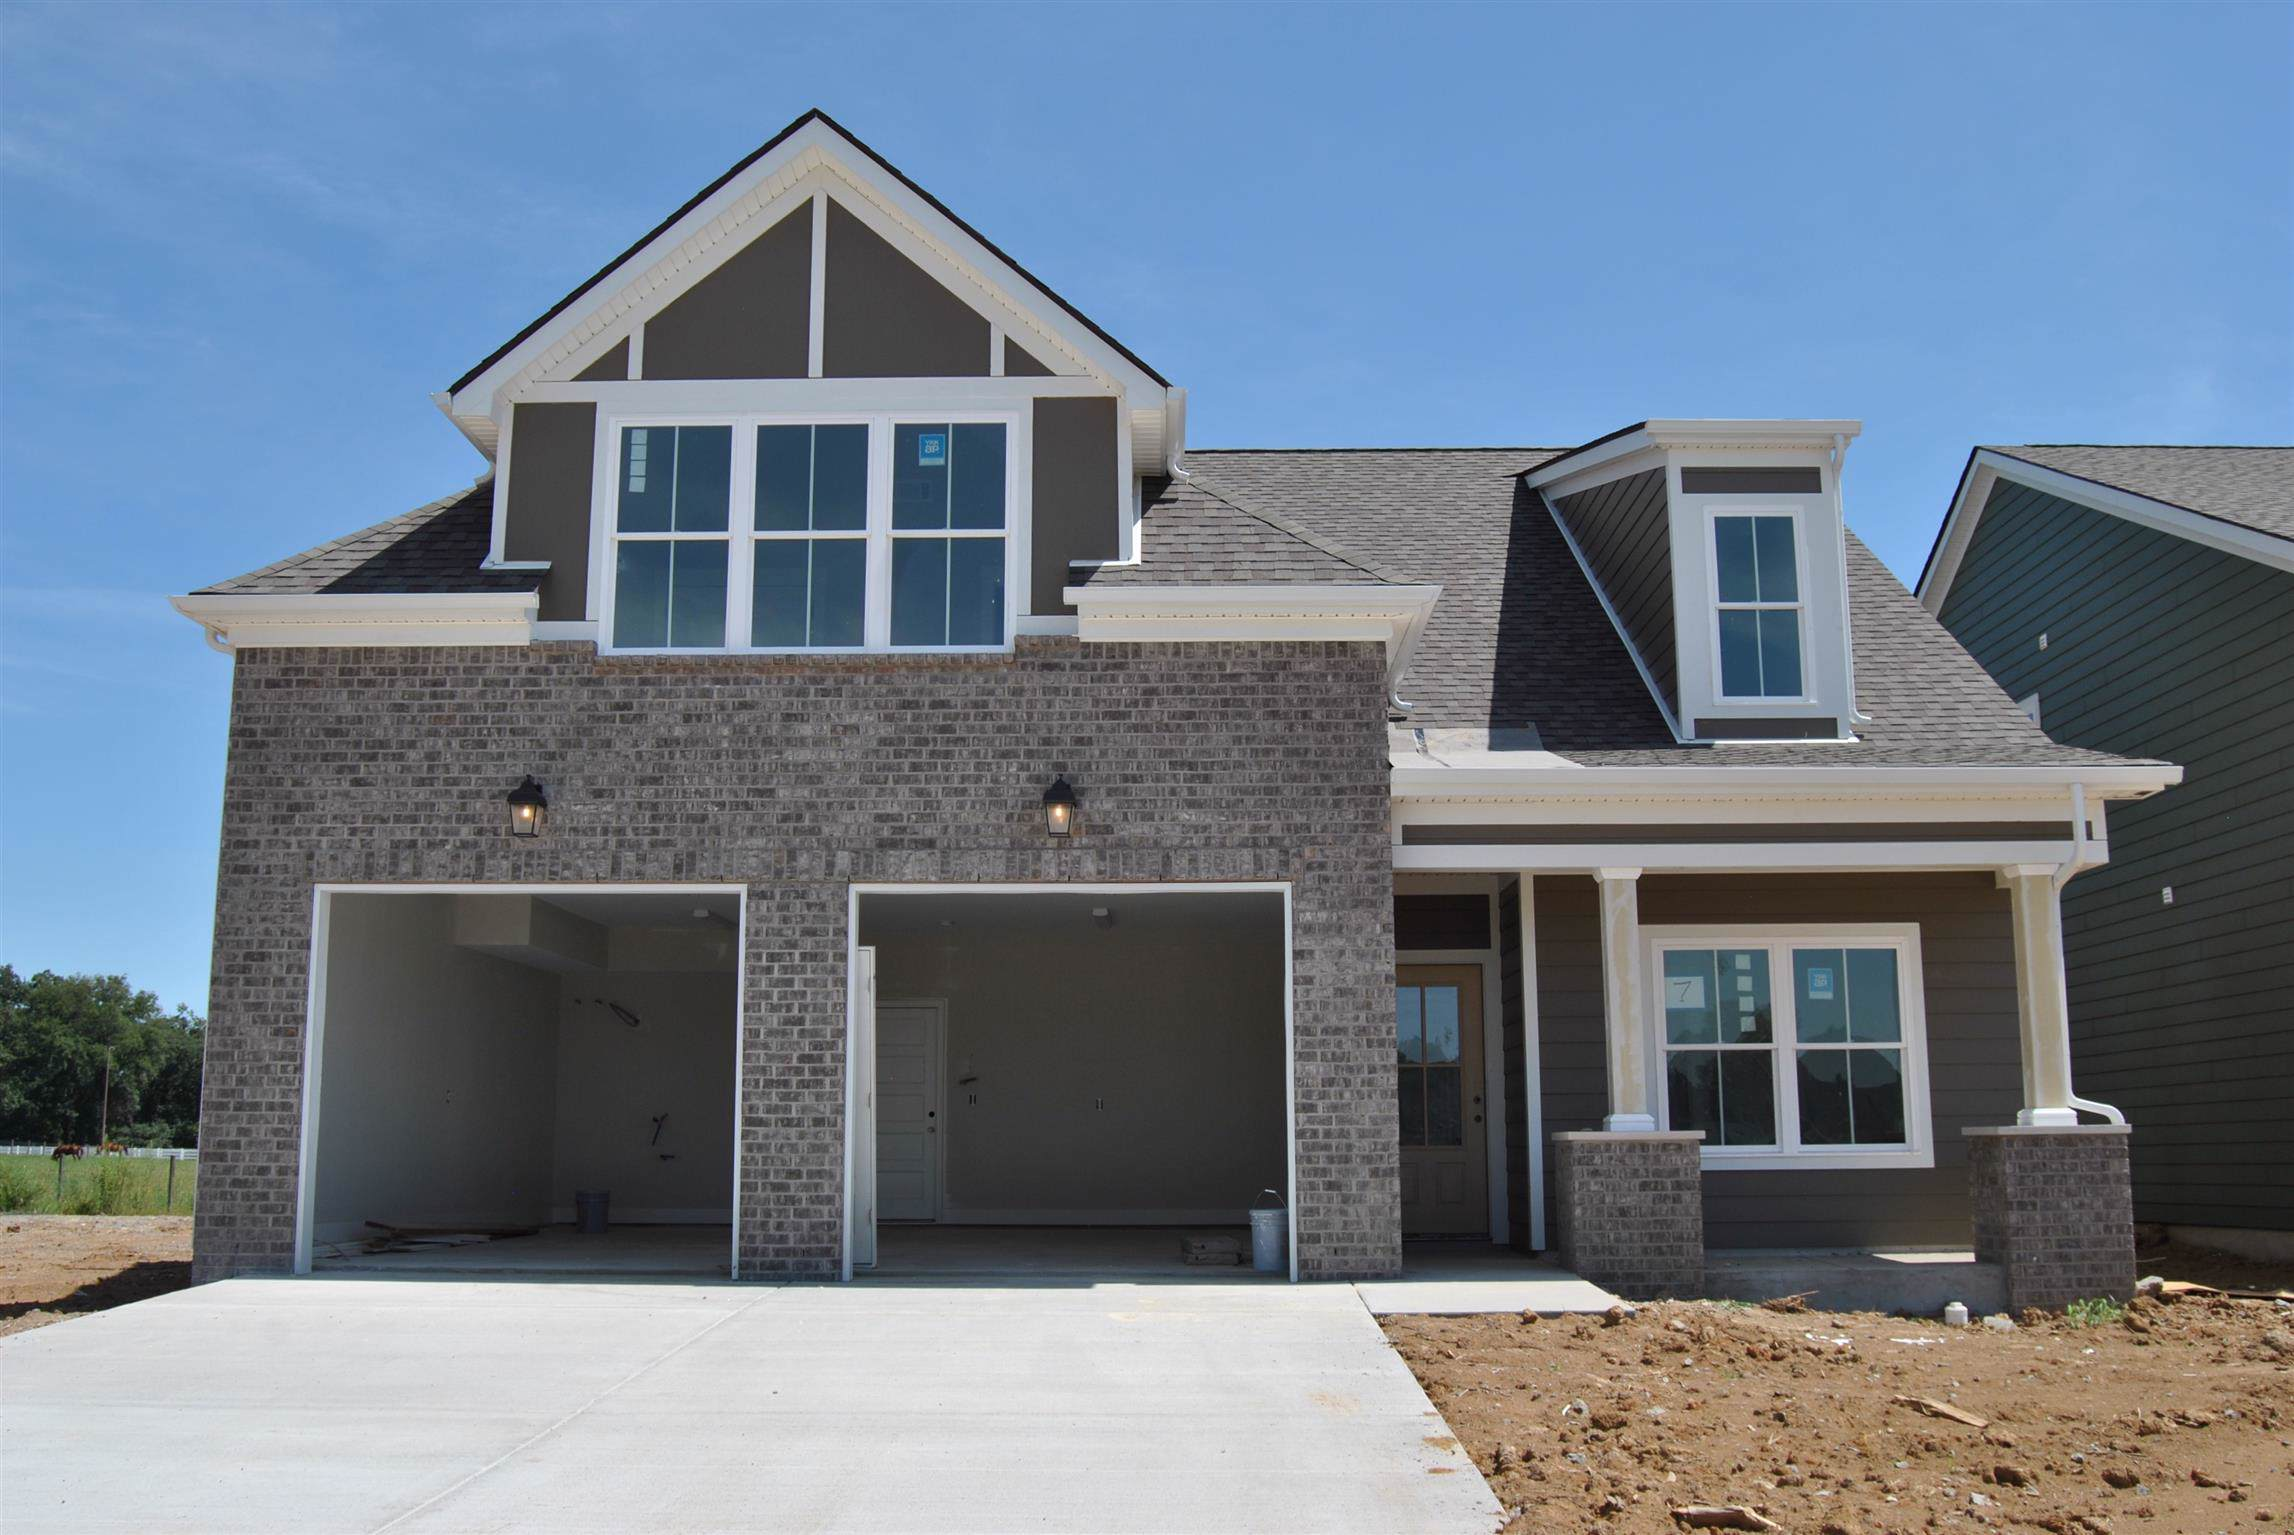 0 Caroline Farms Drive 7, Murfreesboro, TN 37129 (MLS #RTC2048395) :: FYKES Realty Group